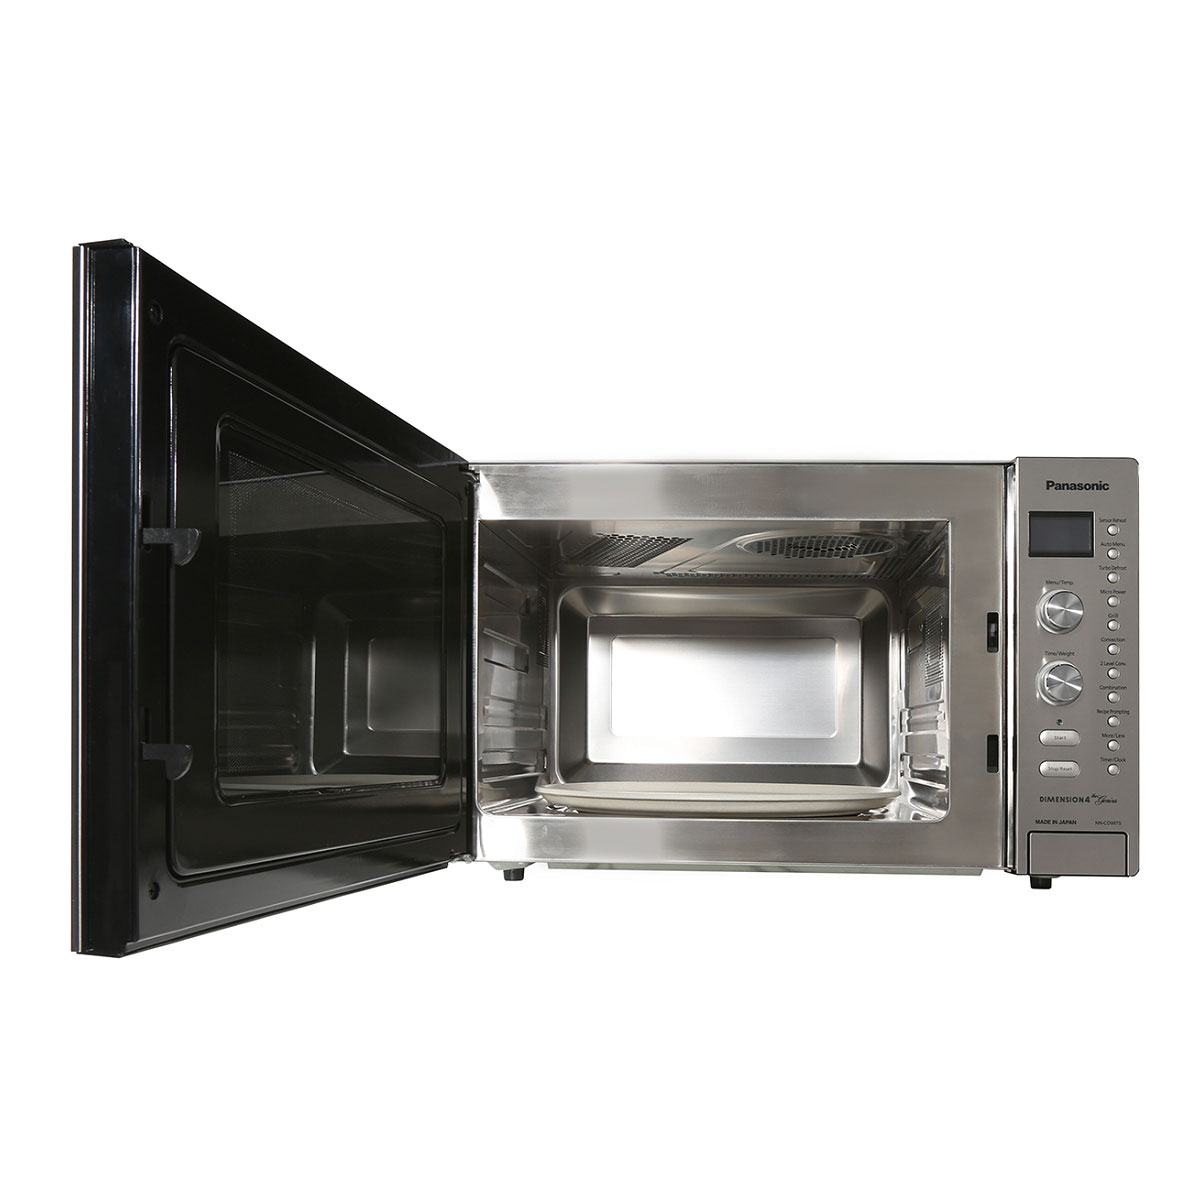 Panasonic NNCD997S 42Litres 1000W Convection Microwave 29698